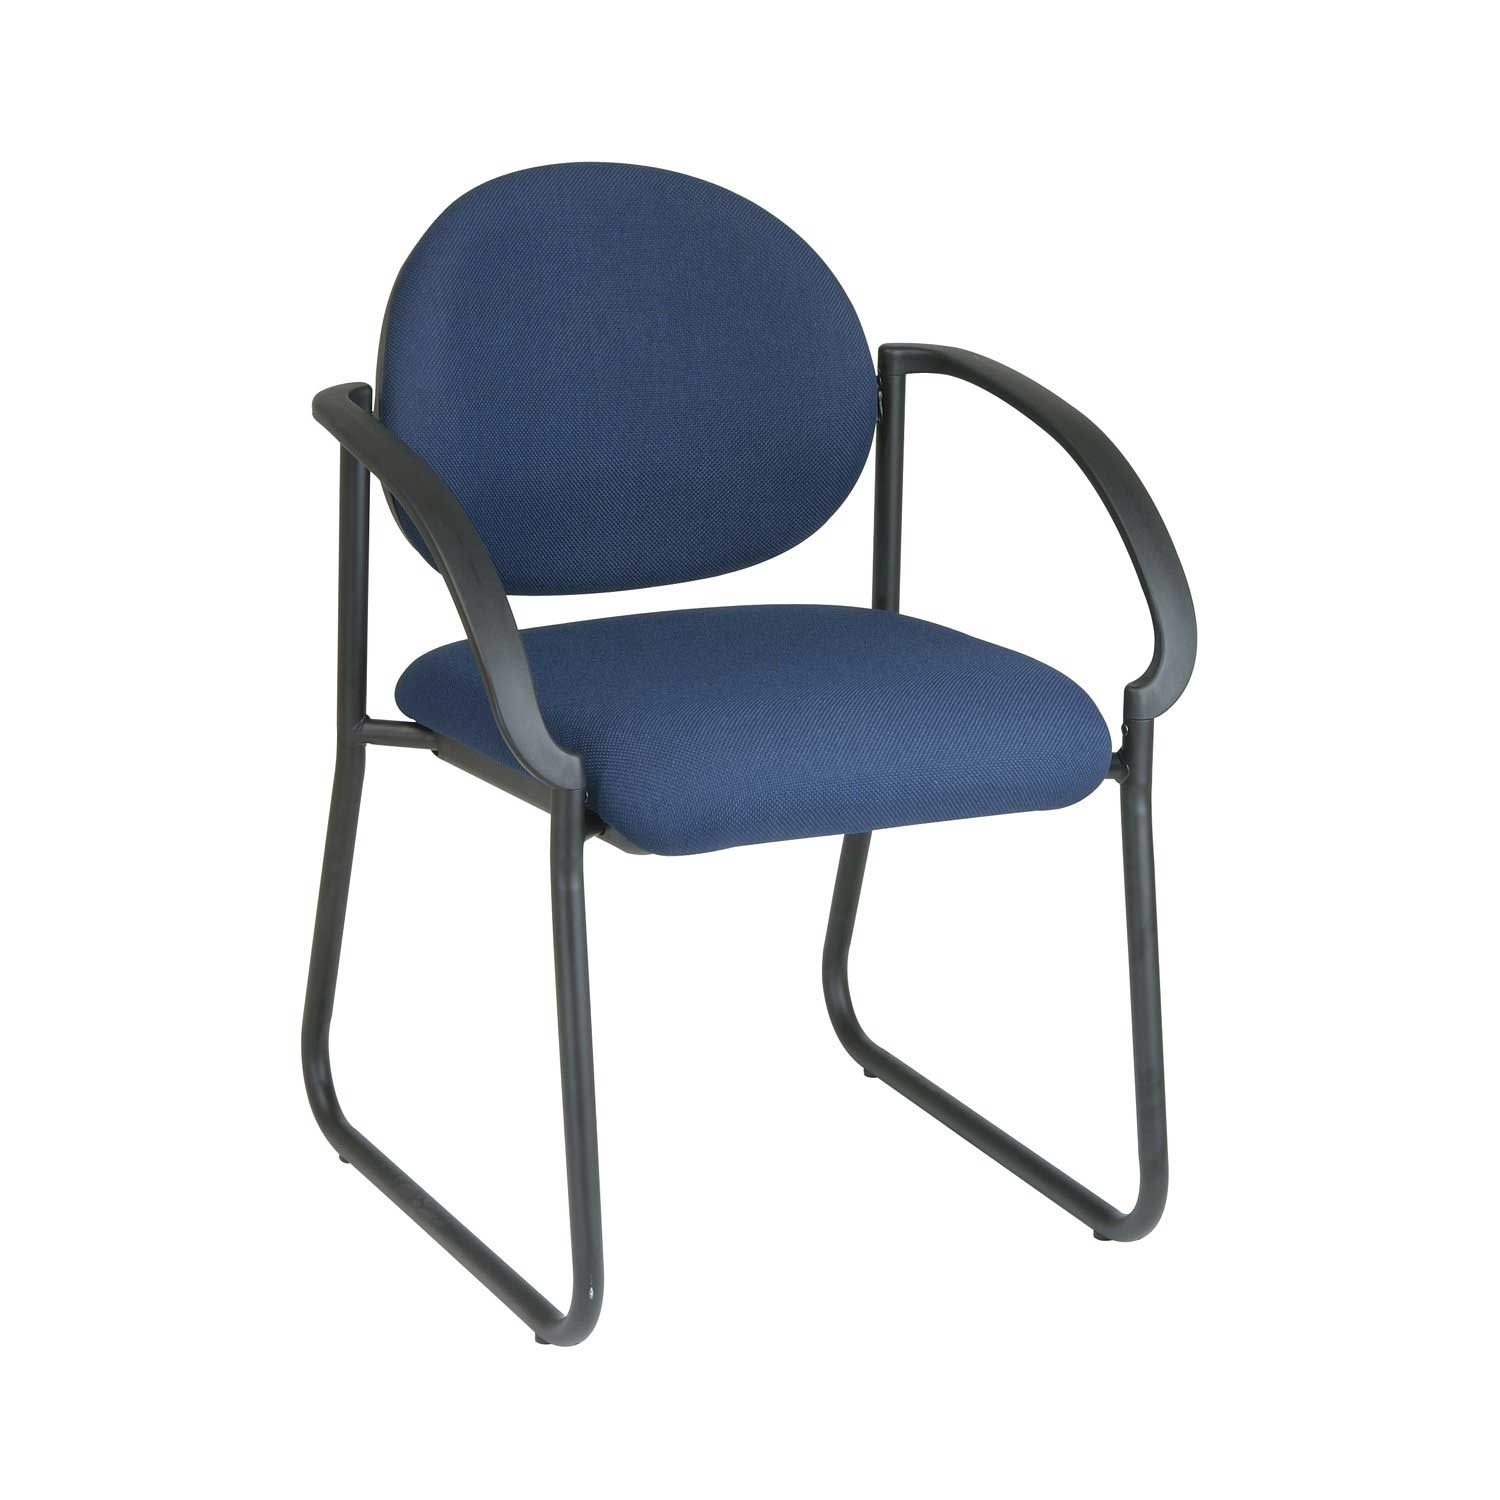 15 Computer Chairs Images And Designs That Are Best To Buy ...